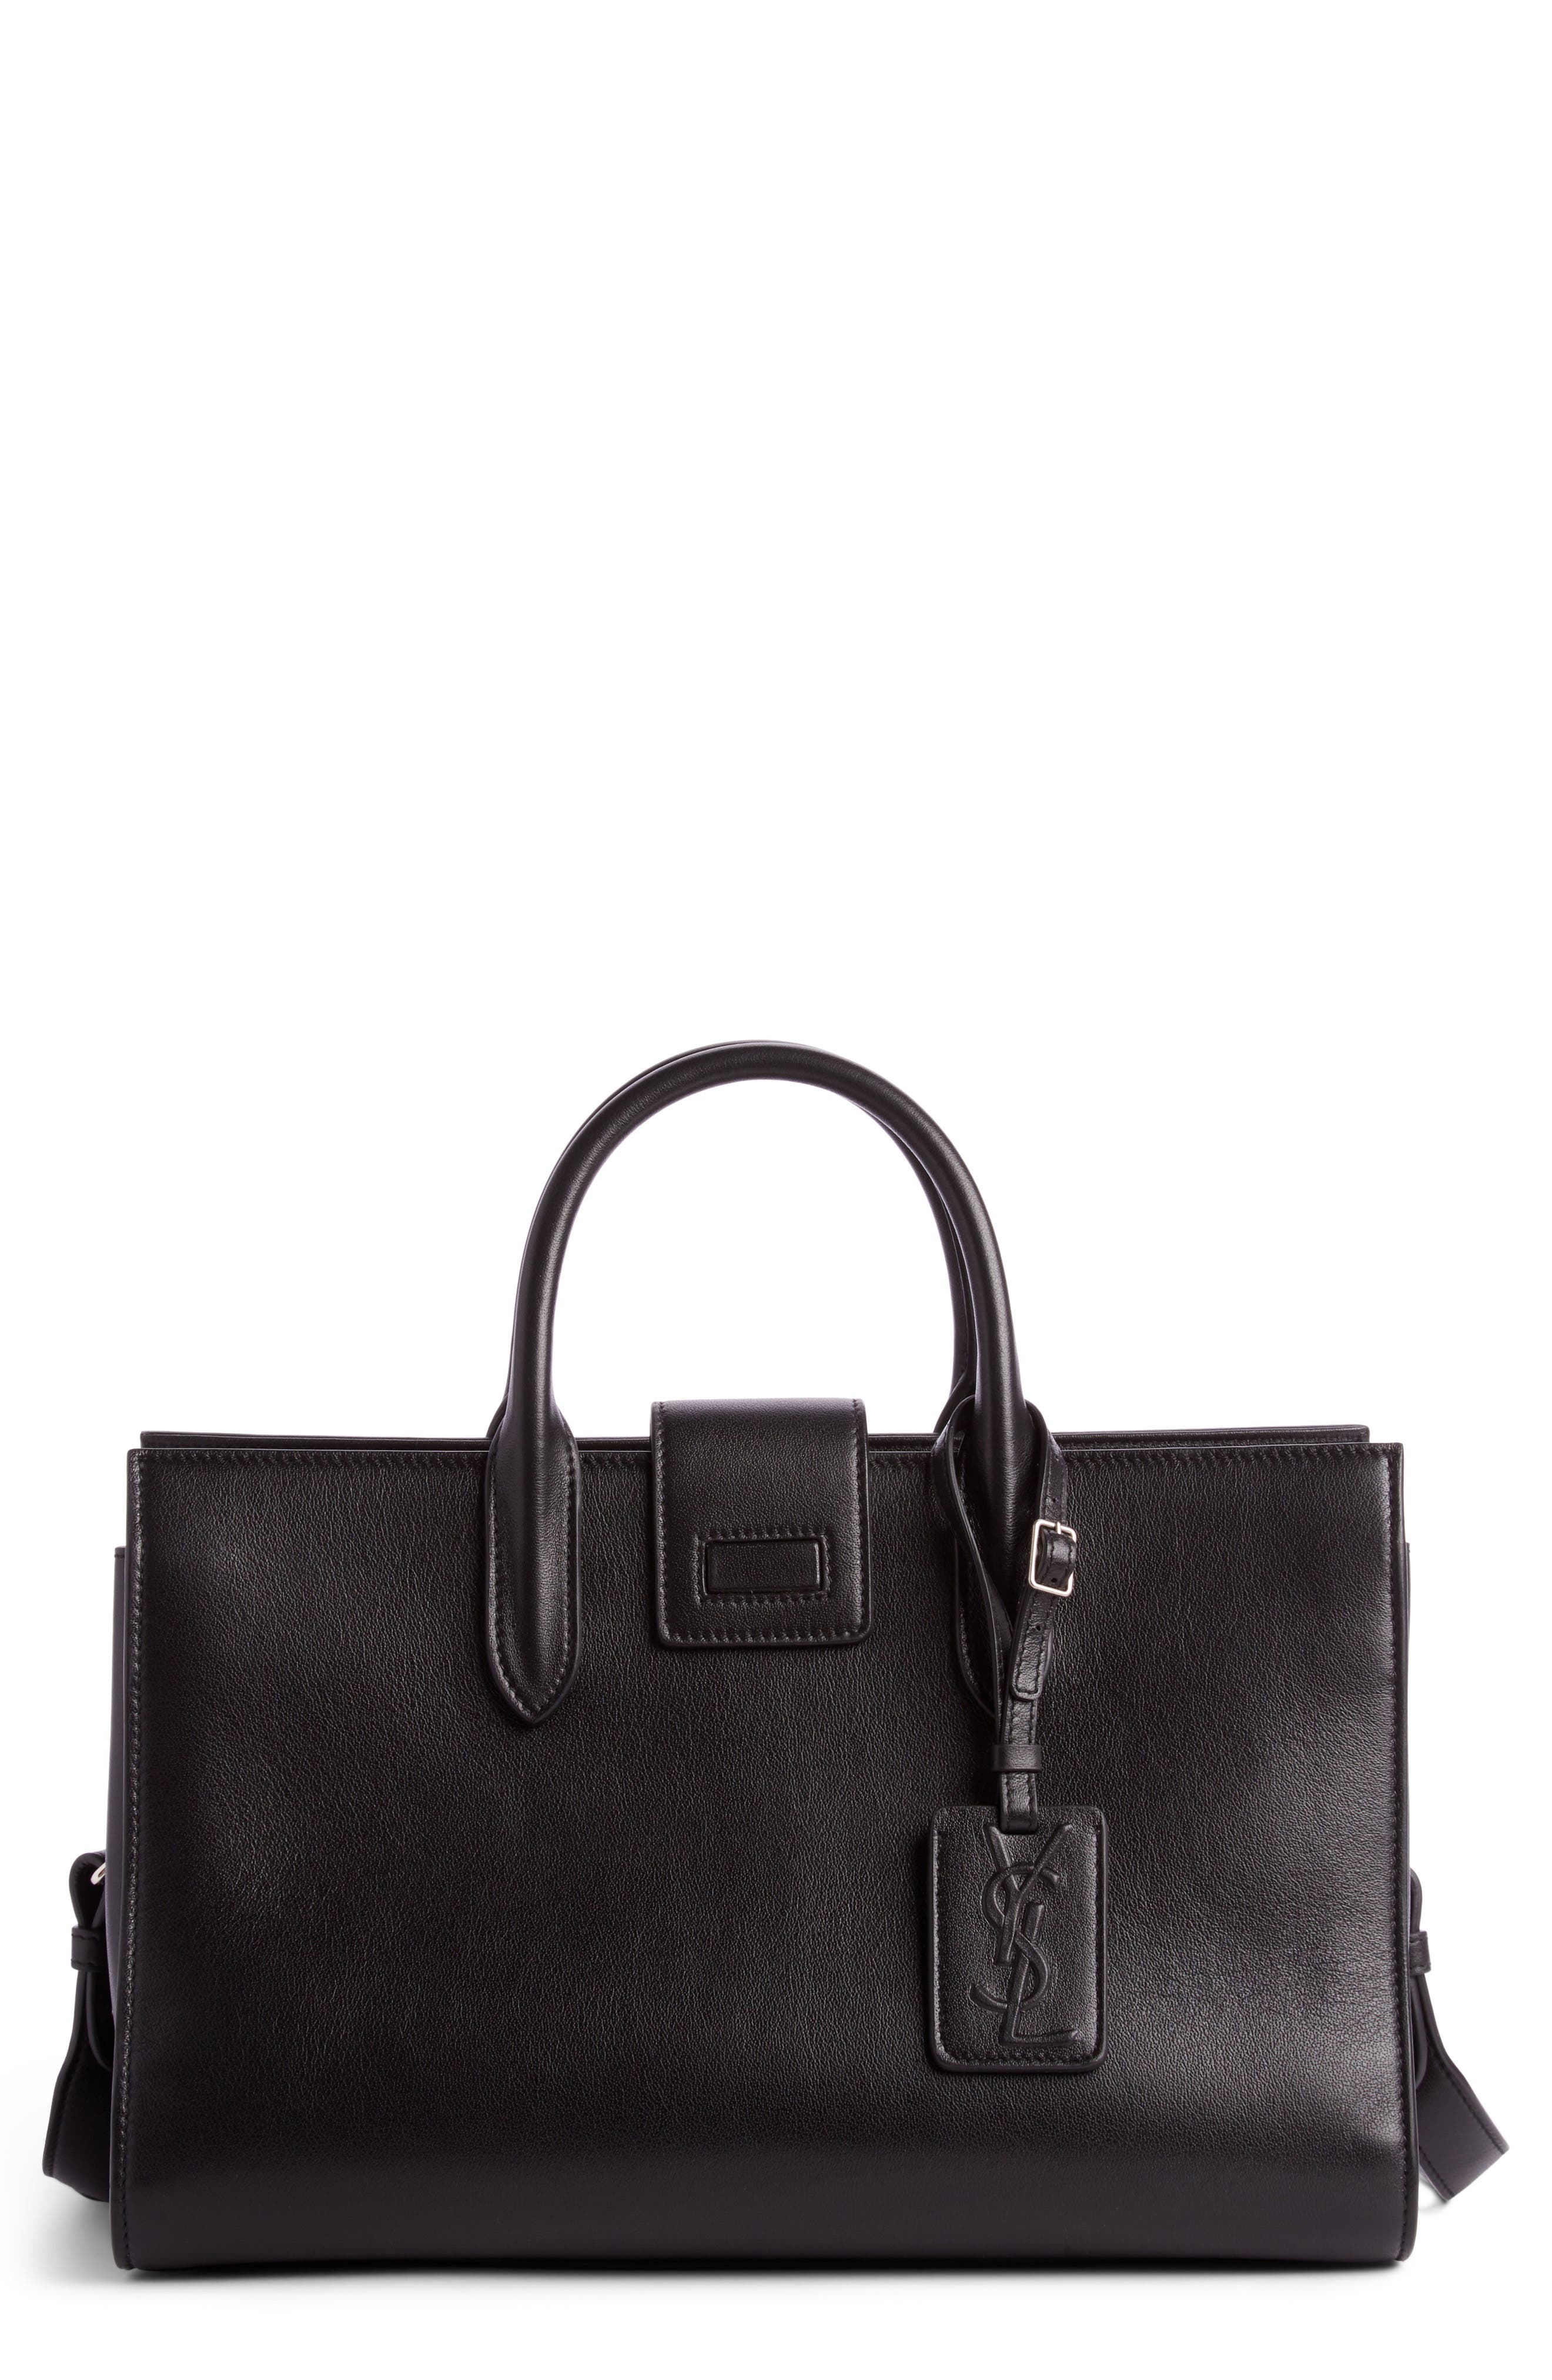 Saint Laurent Medium Jane Cabas Leather Satchel